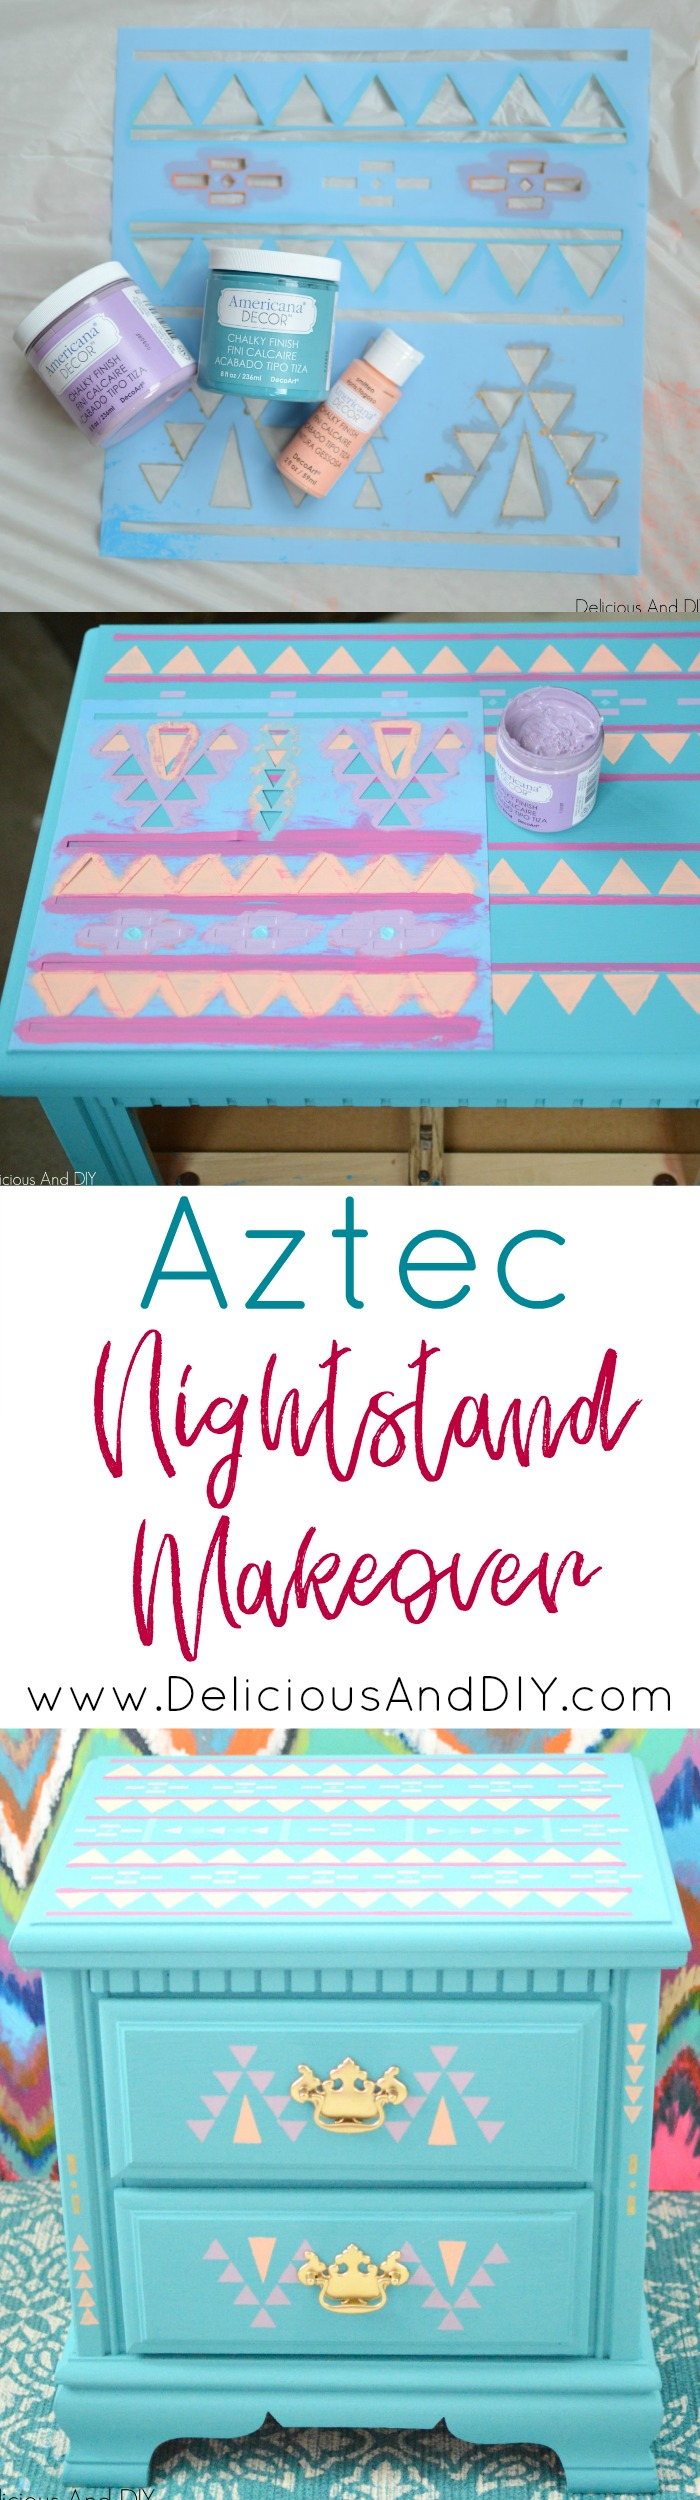 Transform your old Nightstand into this Aztec Stenciled Beauty| Home Decoration| Stenciled Furniture | Painted Furniture| Chalk Paint Furniture| Aztec Inspired Design| Nightstand Makeover